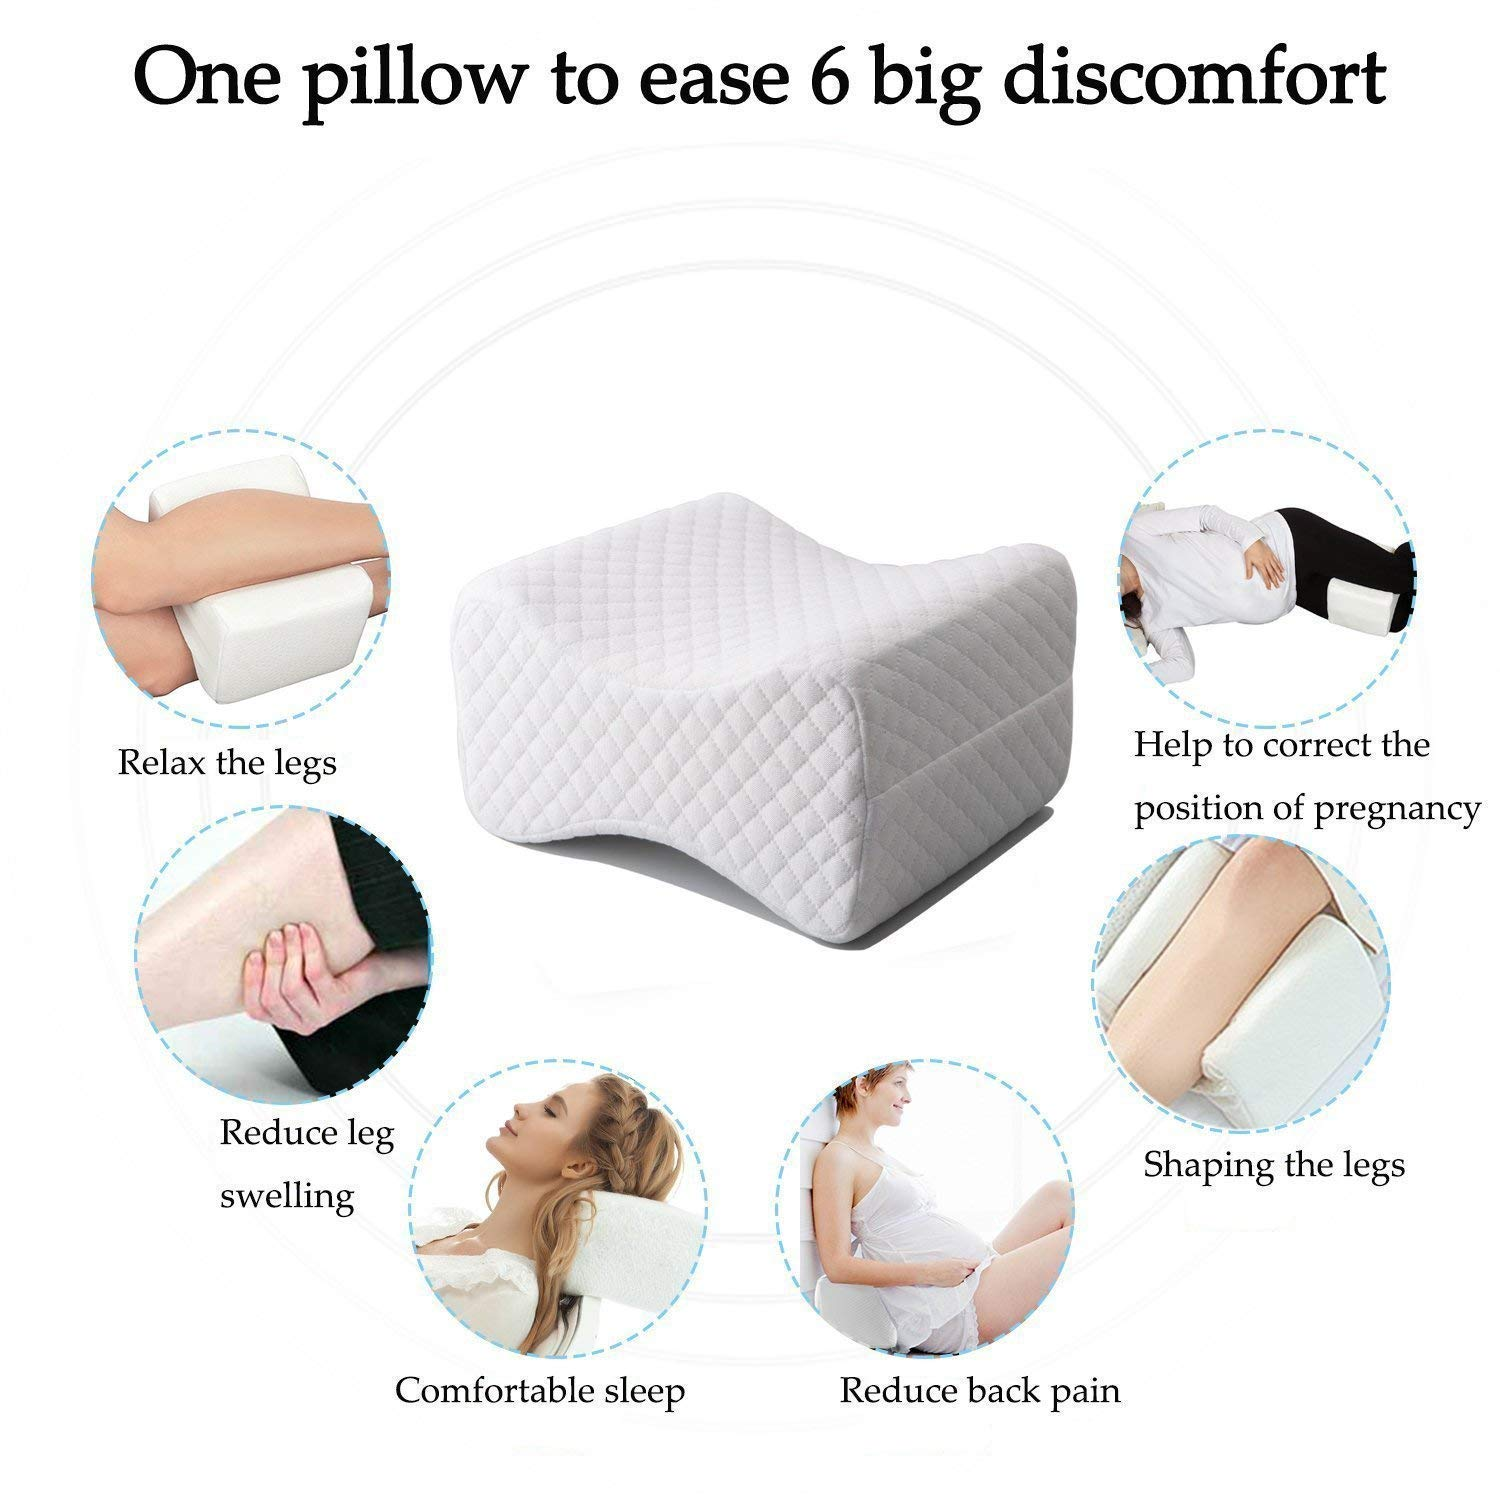 Orthopedic Knee Pillow for Sciatica Relief - Best for Lower Leg, Back, and Knee Pain- Memory Foam Wedge Contour Leg Pillow with Removable Cover